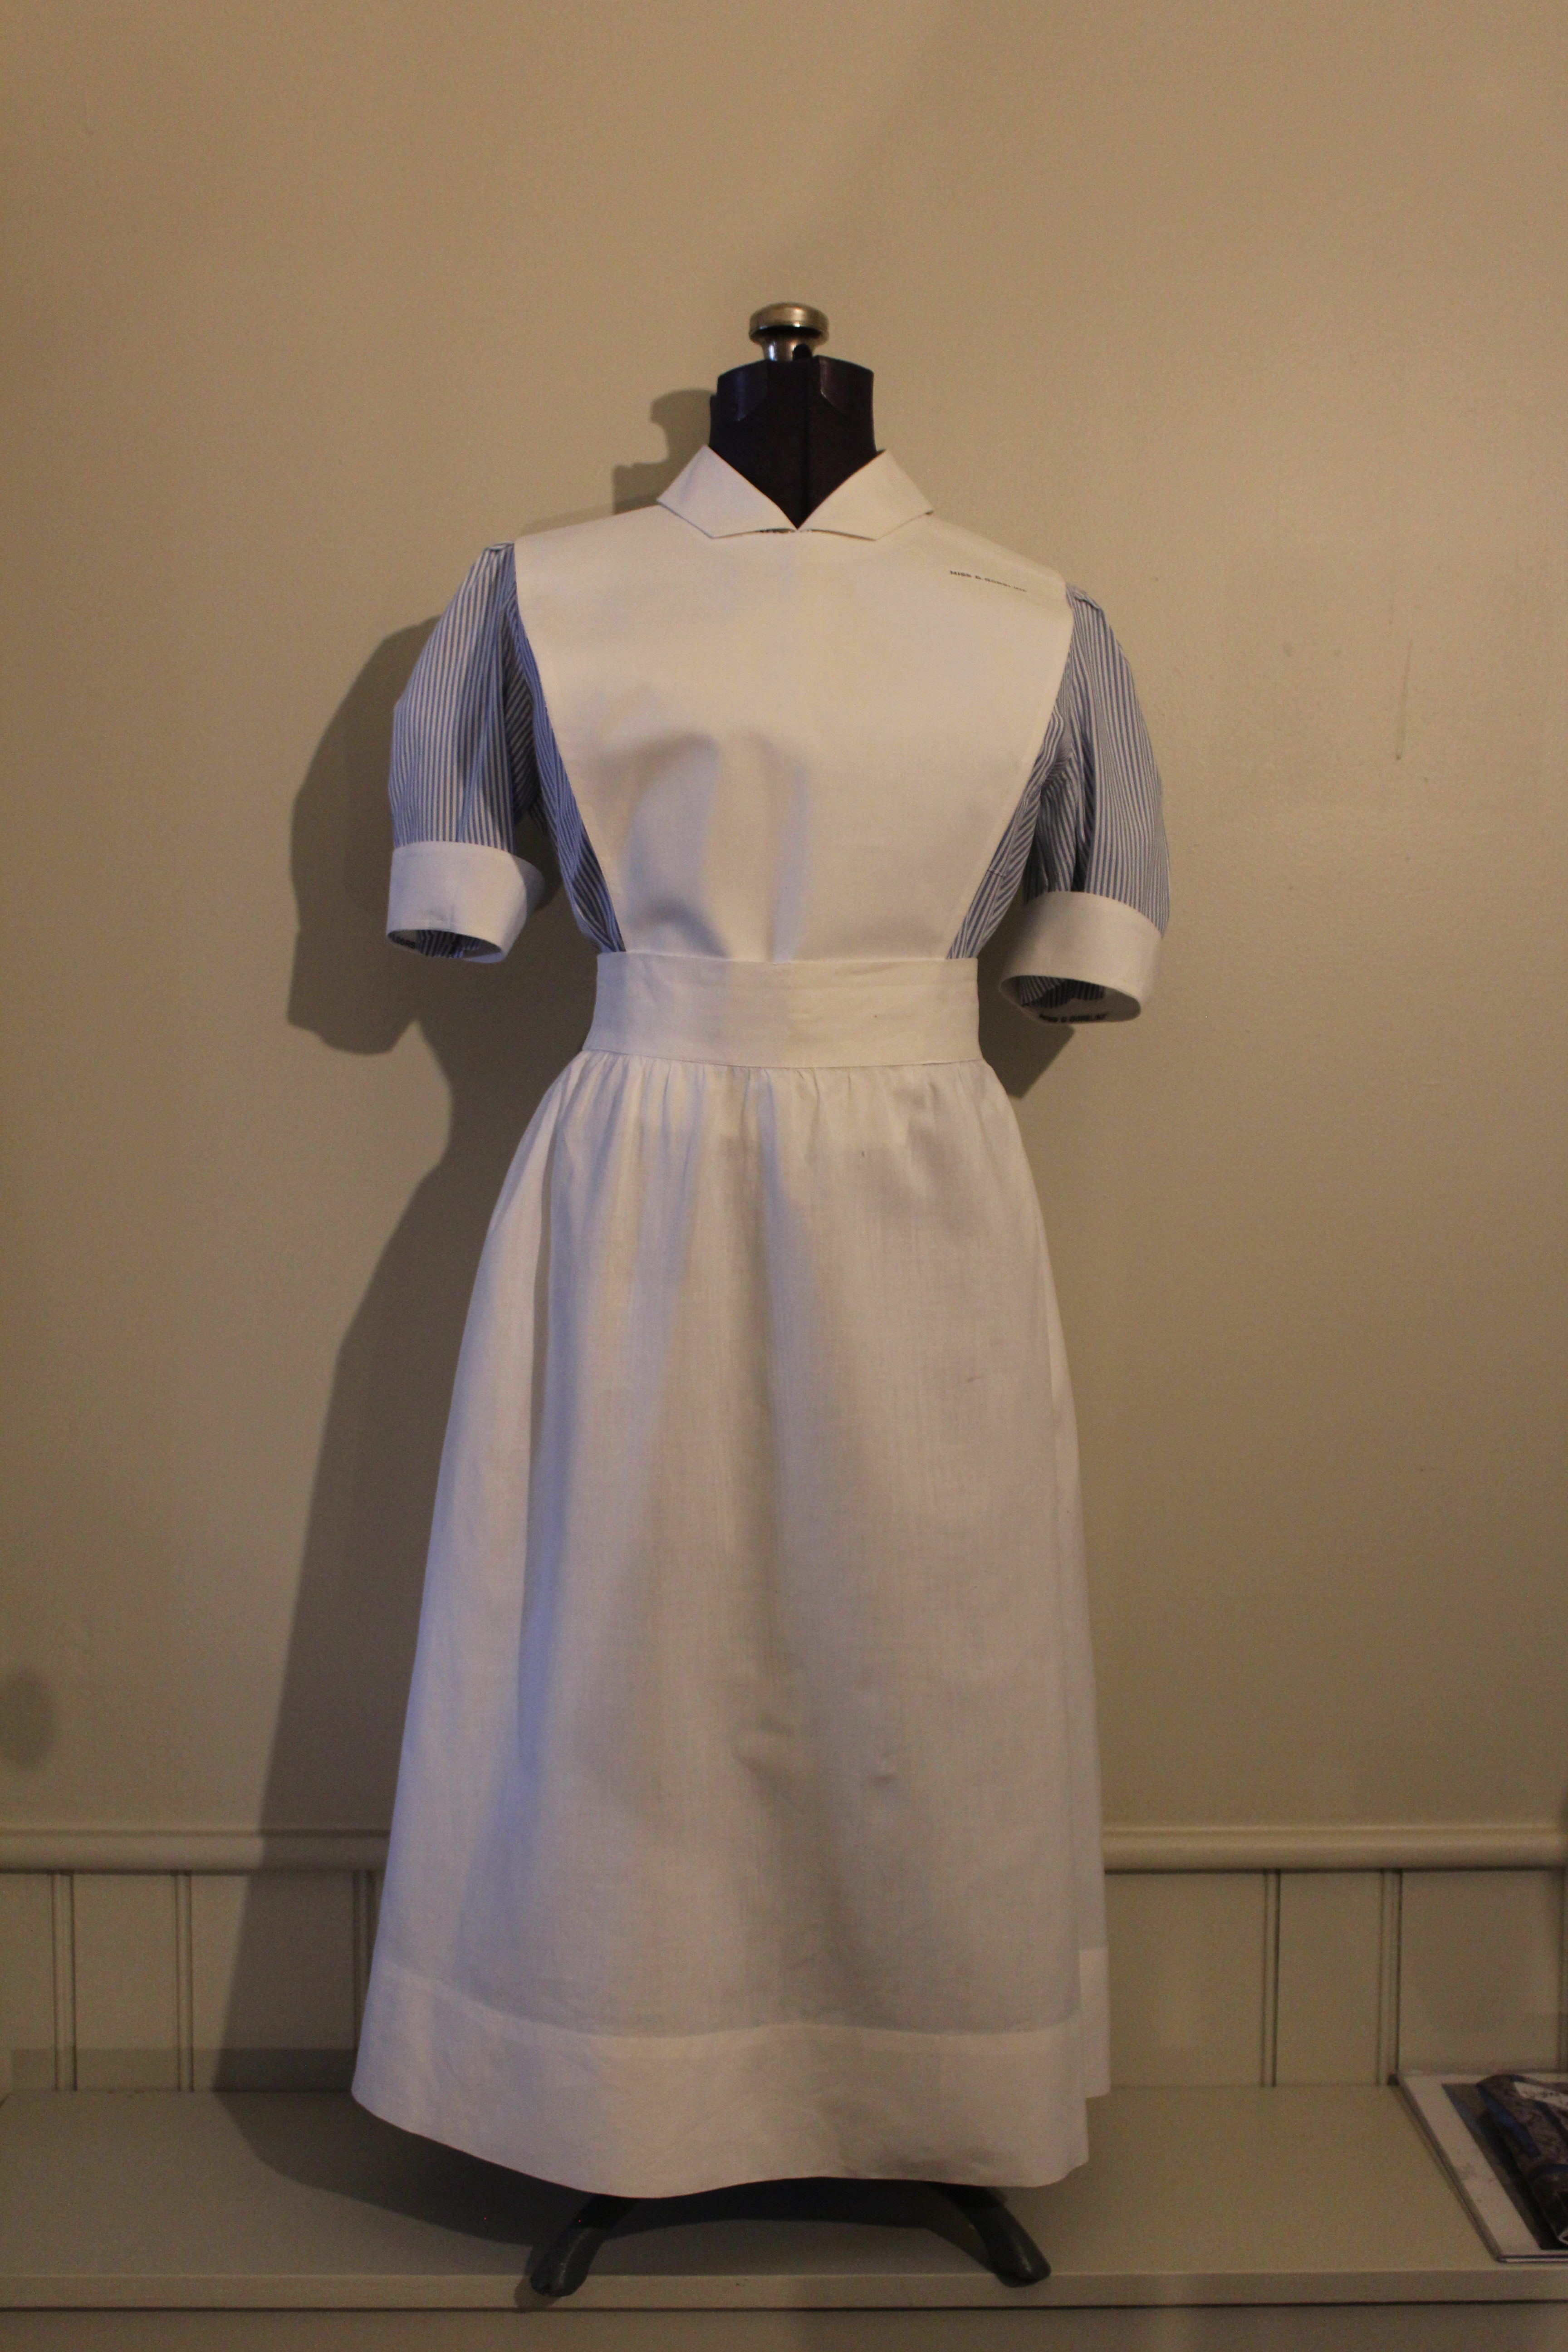 Oshawa General Hospital School of Nursing Student Nursing Uniform, c. 1960